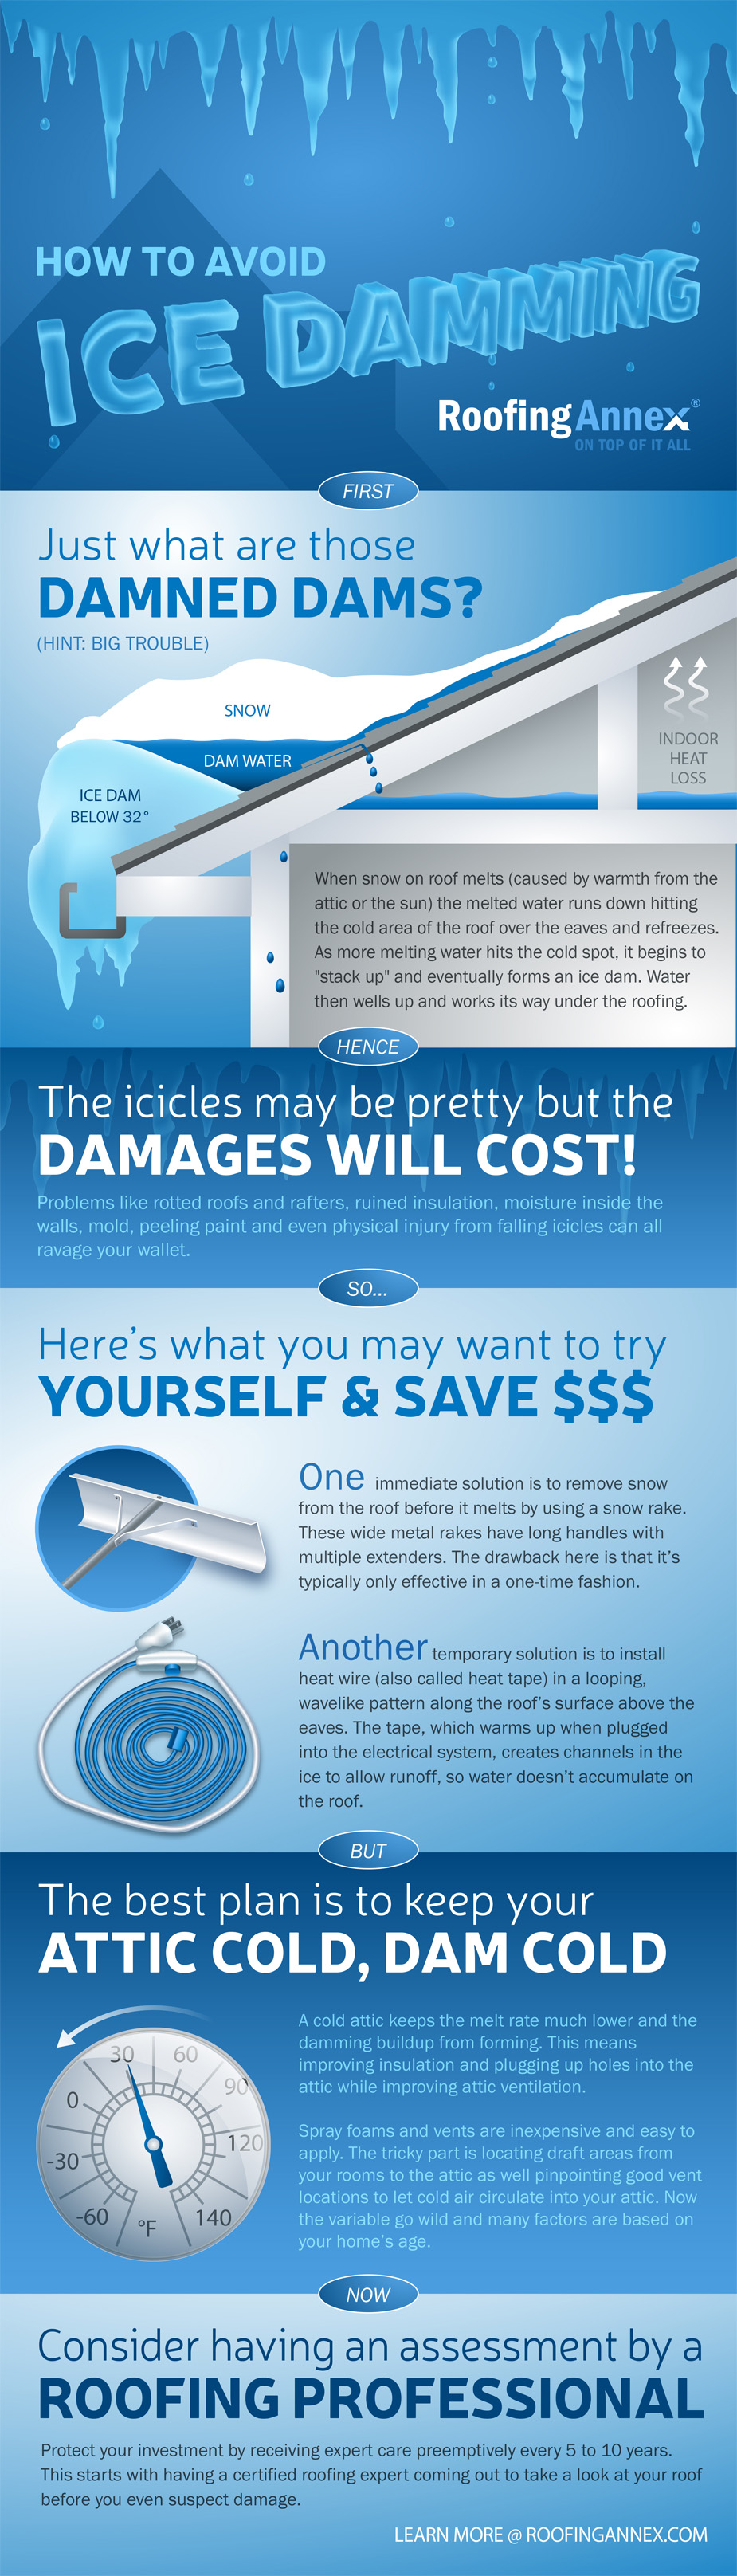 Check out this infographic by Roofing Annex, which explains what ice dams are, the issues caused by ice dams, as...